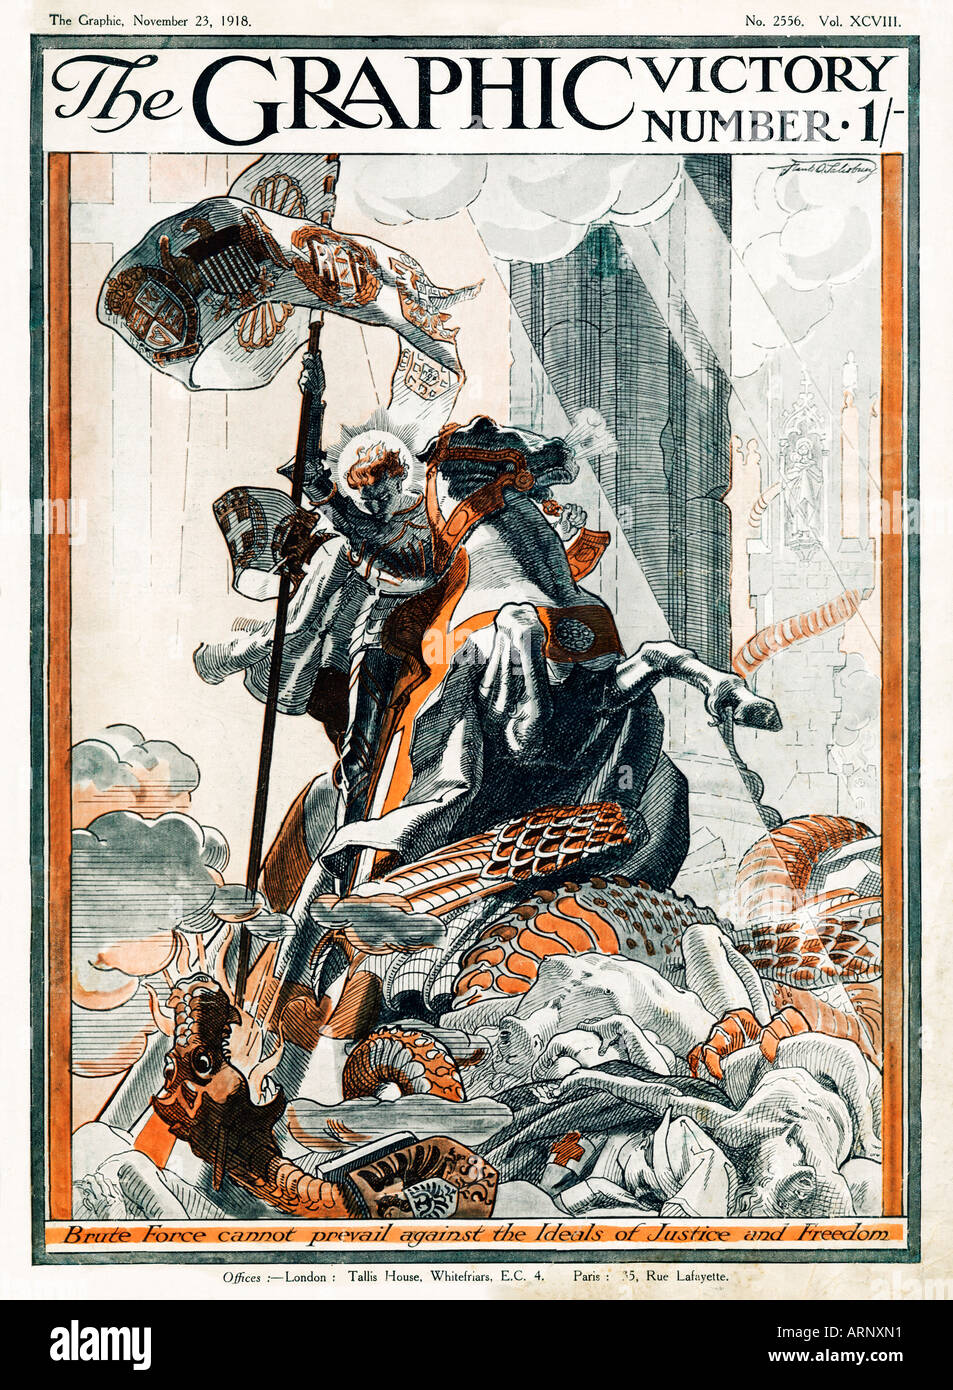 Graphic Victory Number 1918 the Allied St George slays the German Dragon in this Armistice English magazine cover - Stock Image